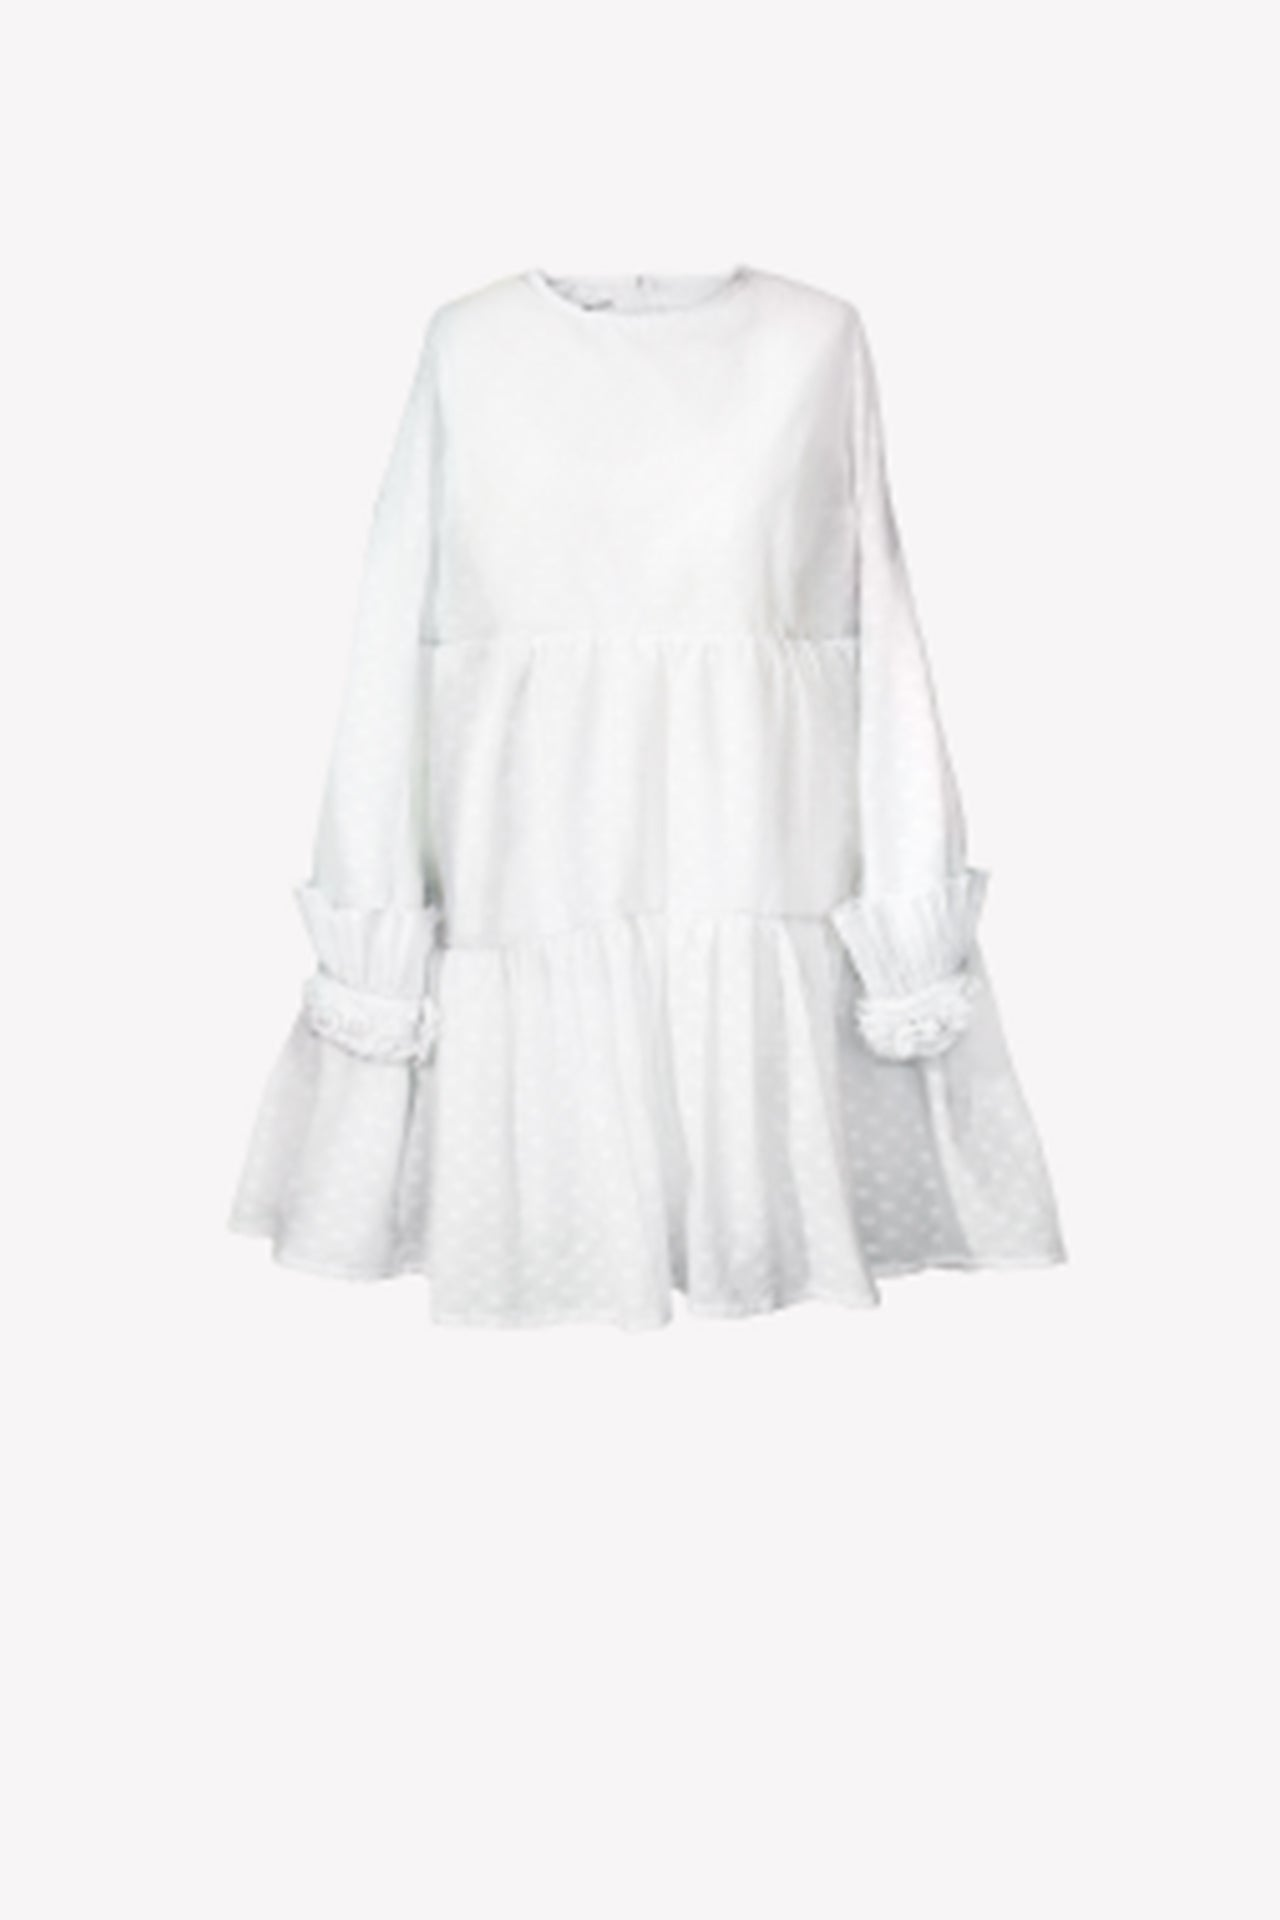 Spotted baby doll dress with artificial flowers and pleats on sleeves